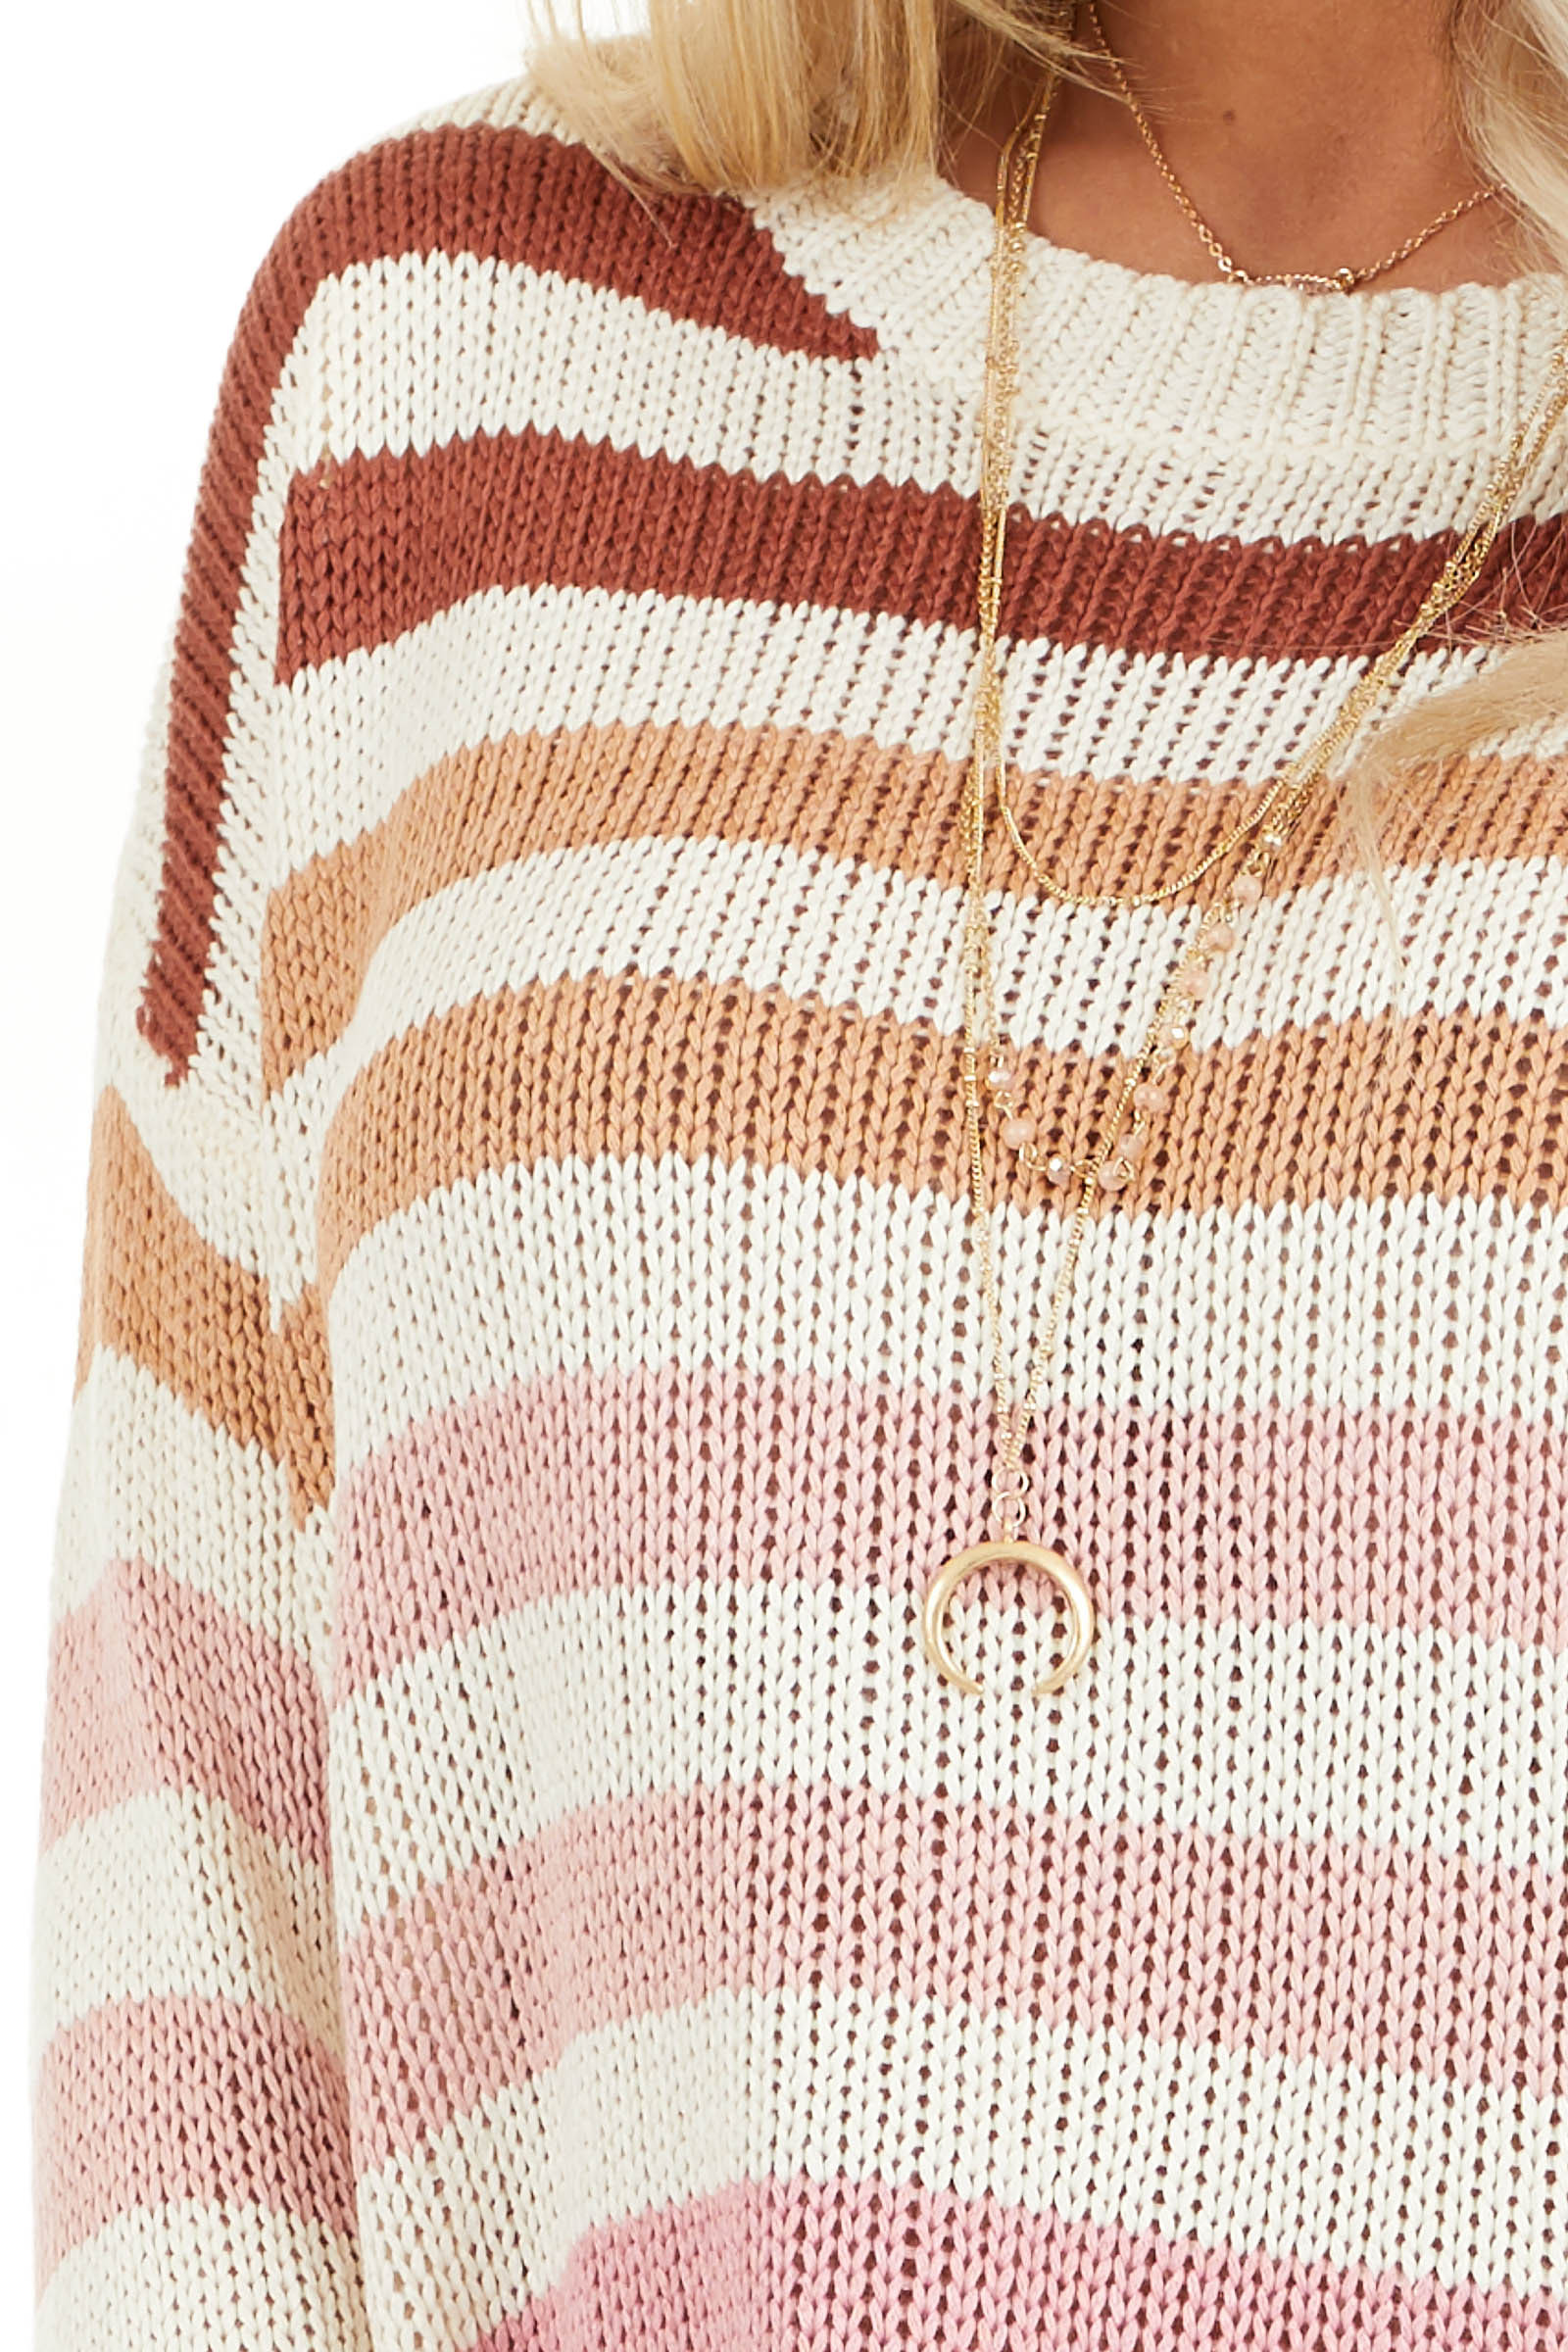 Taupe and Blush Multicolor Striped Loose Fit Knit Top detail